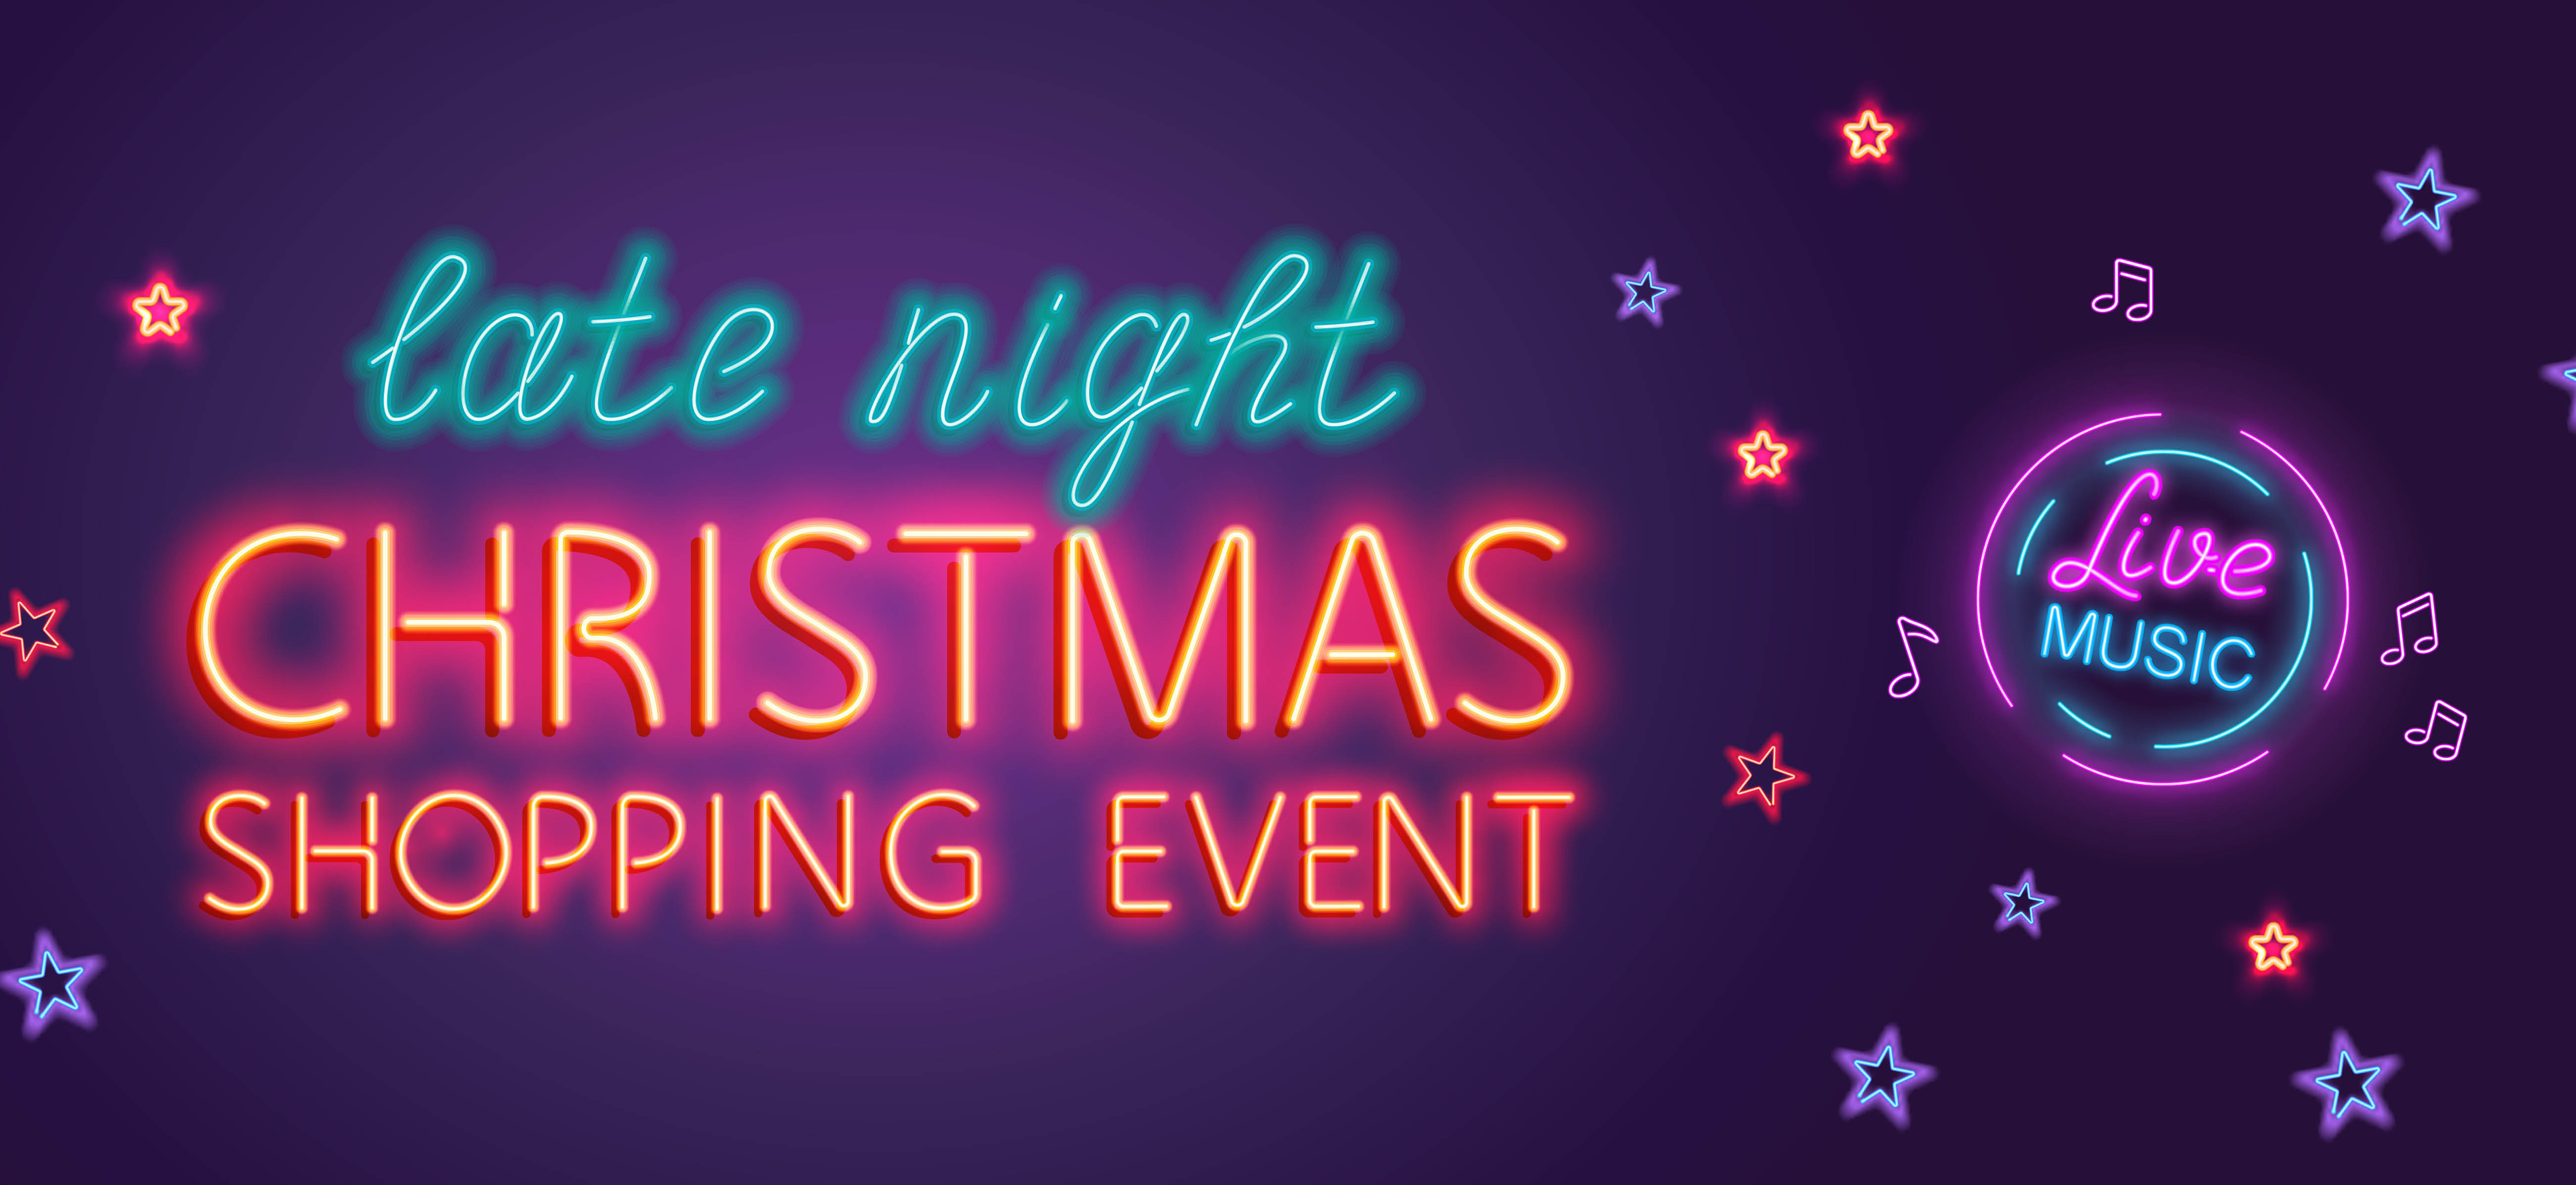 Late Night Christmas Shopping Event